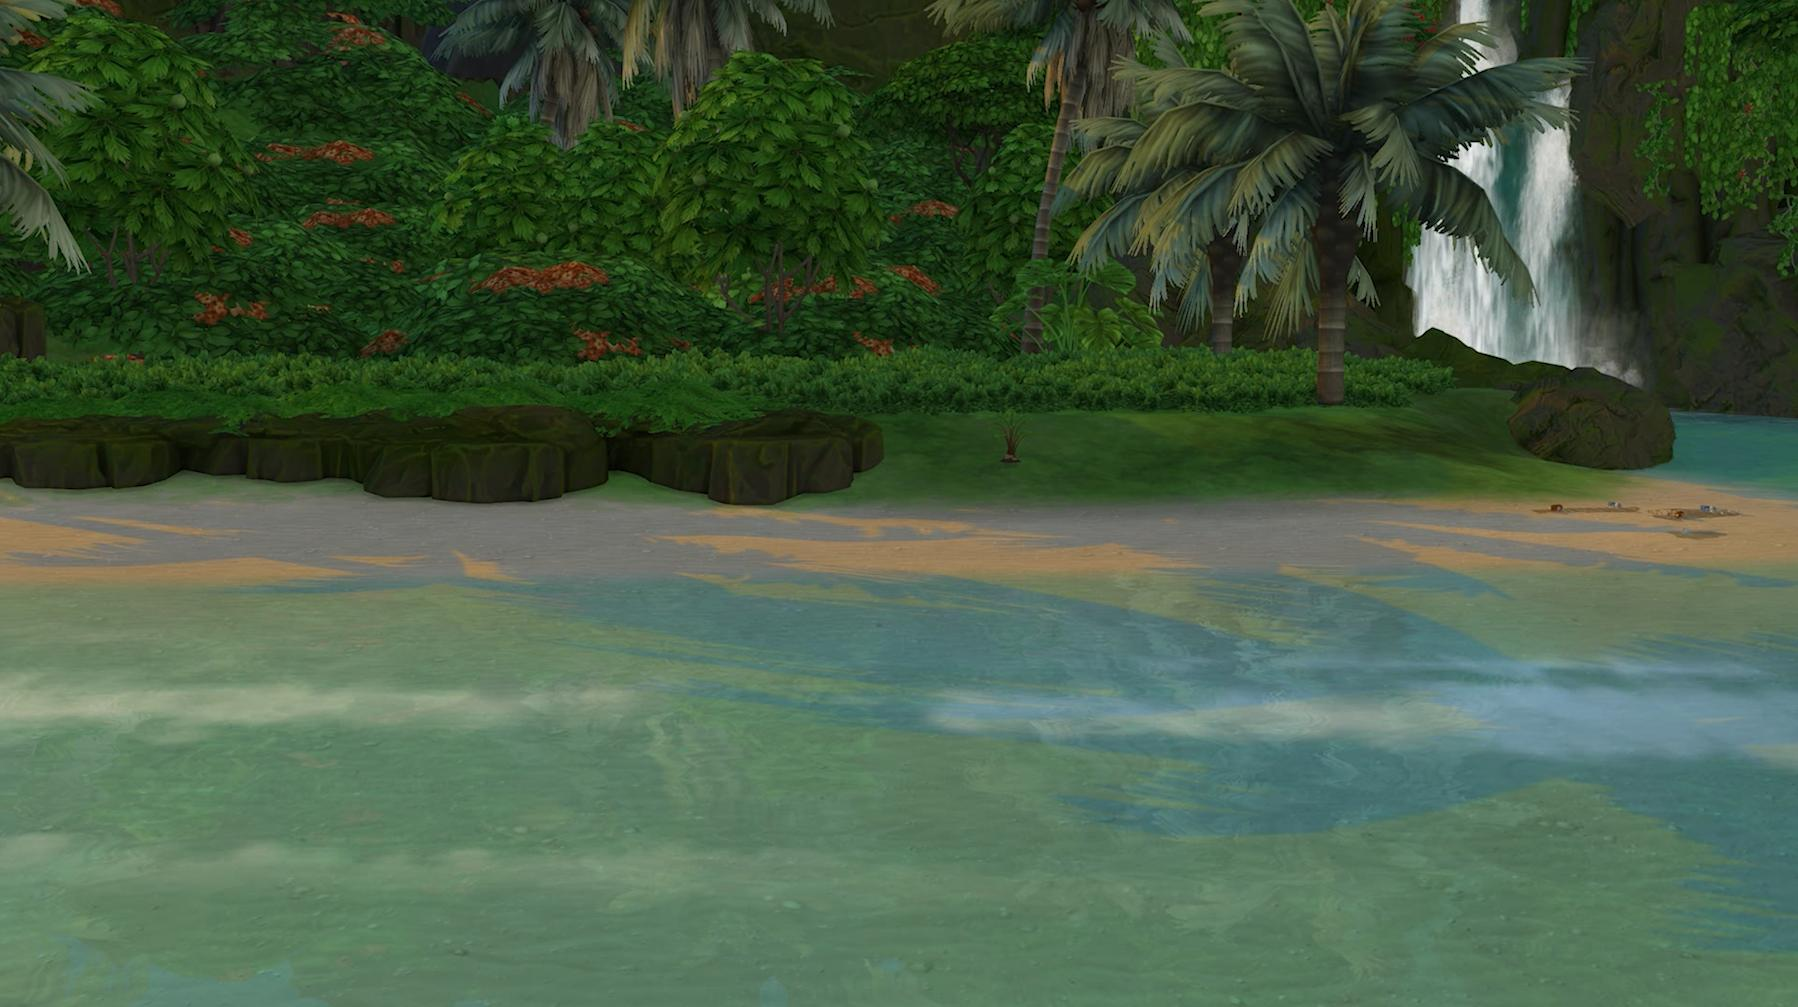 The Sims 4 Island Living - The environment is not in great shape due to pollution